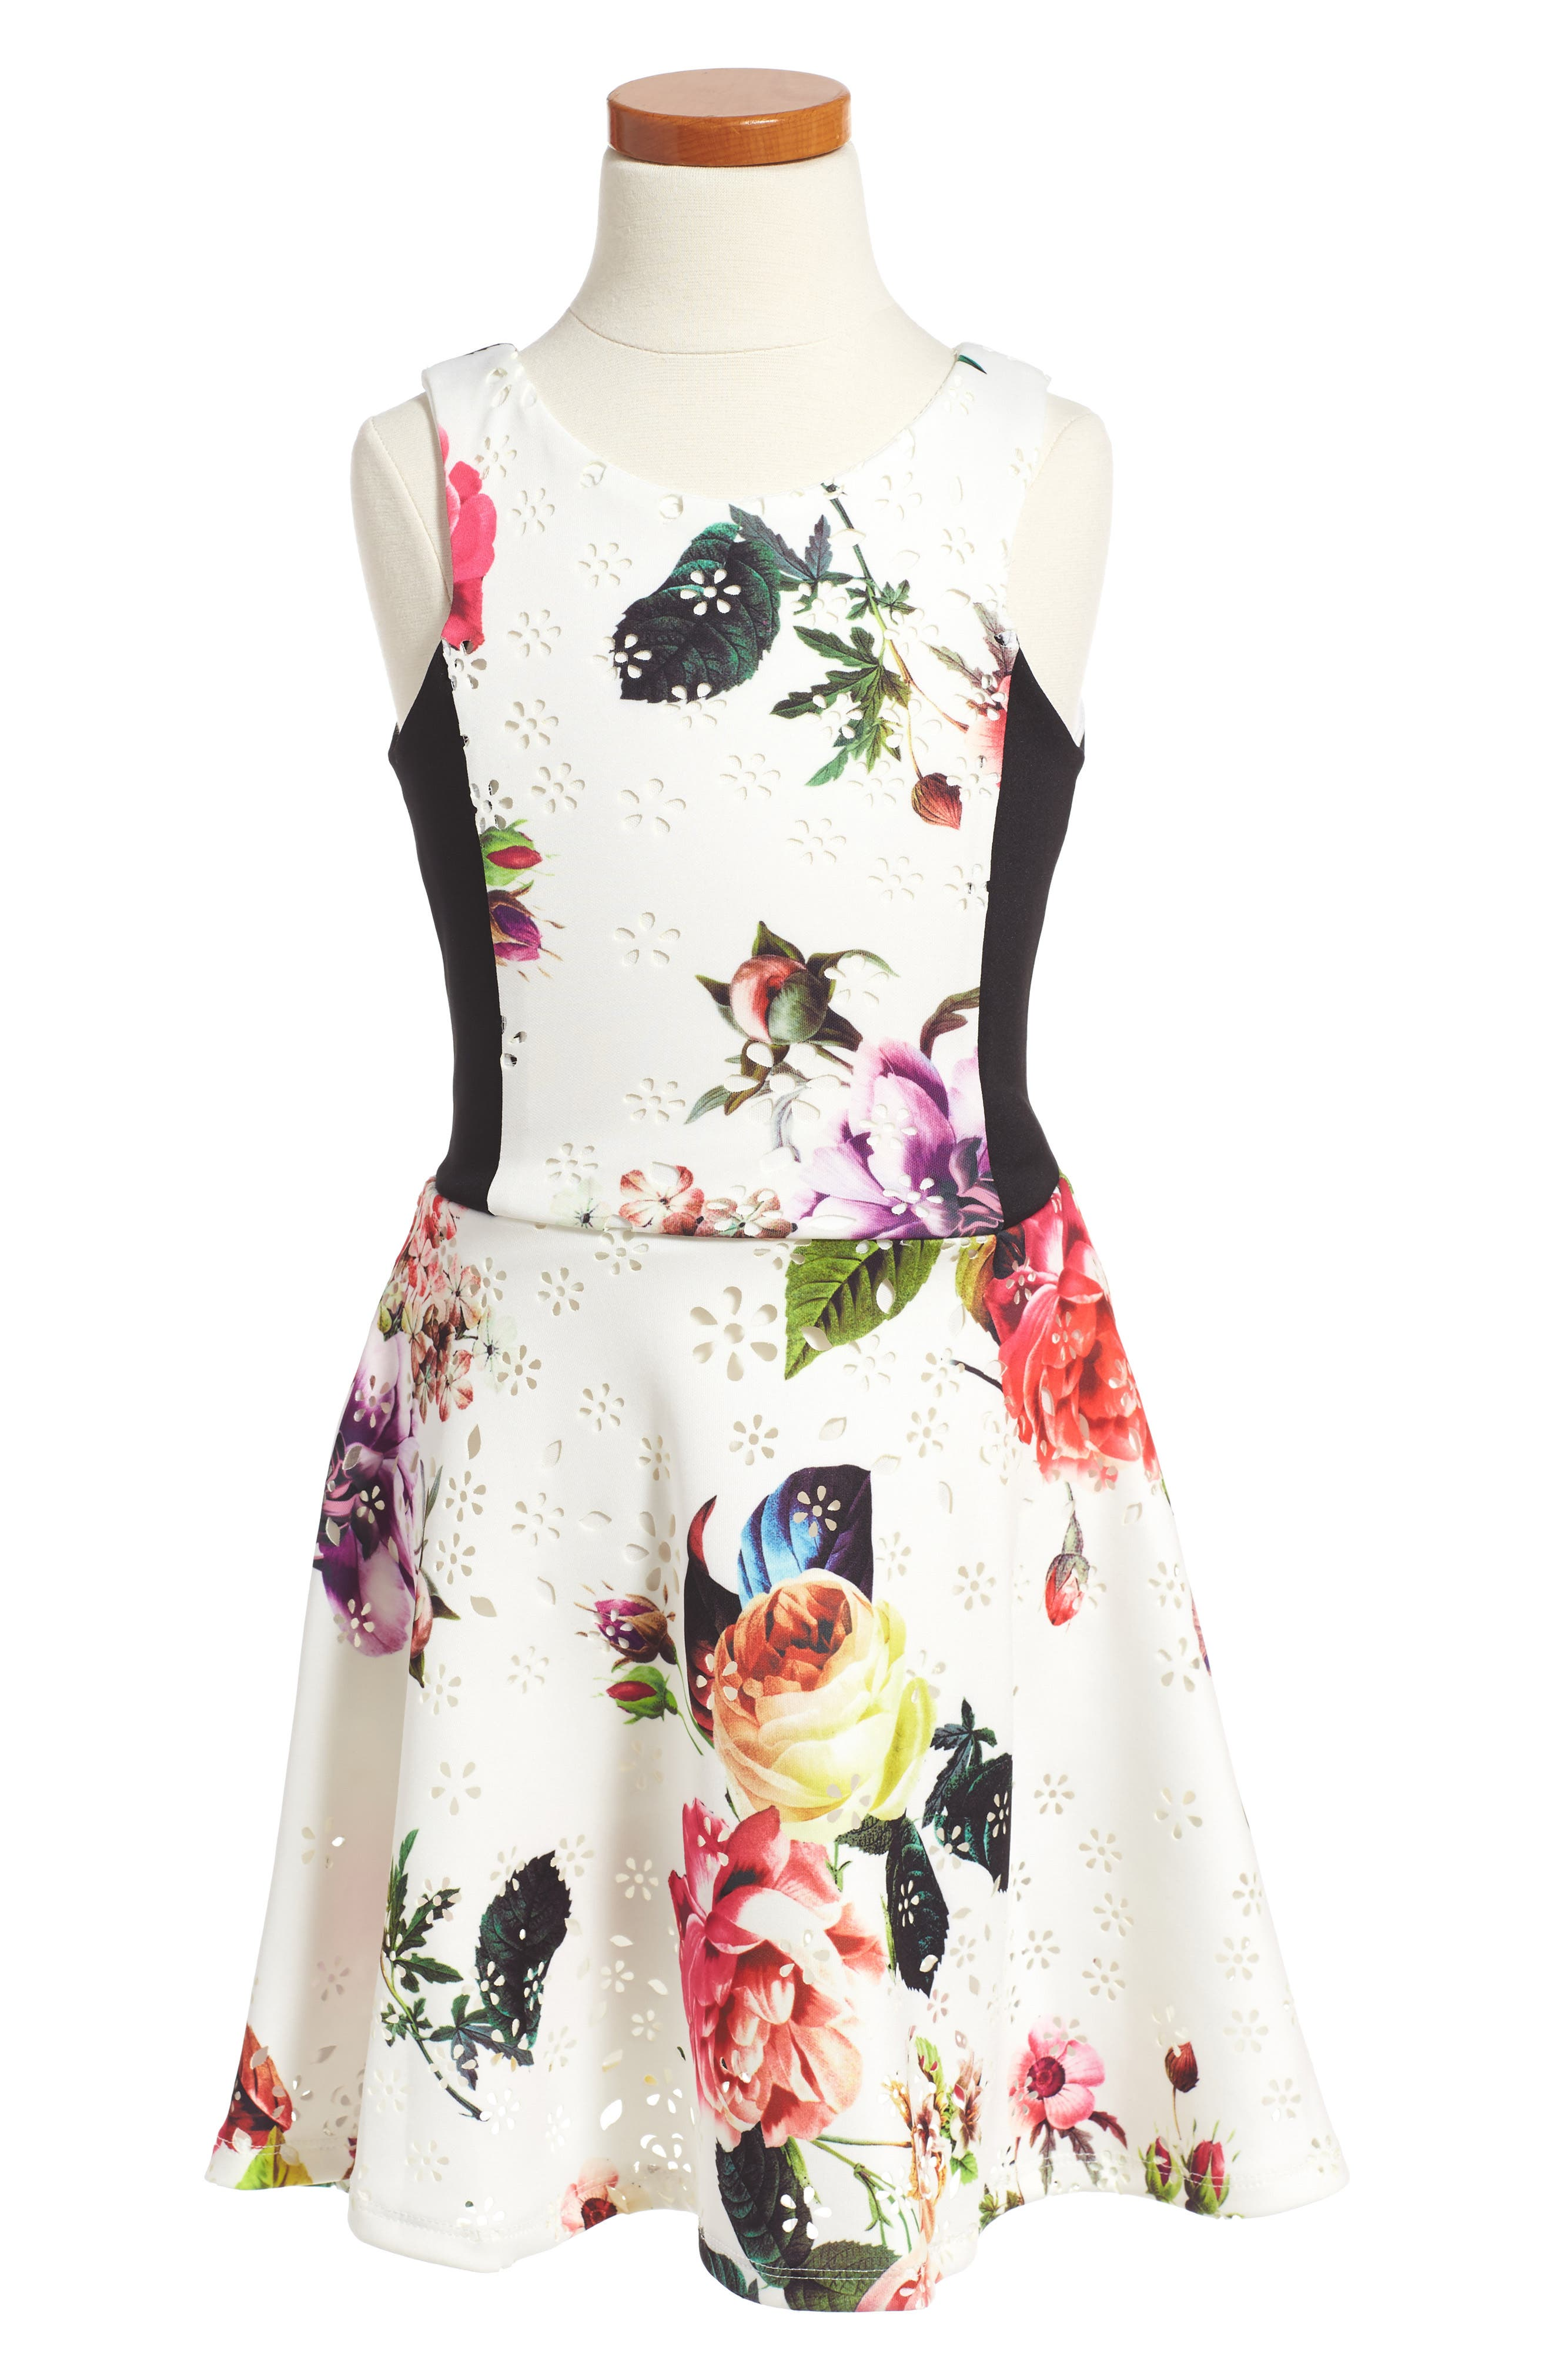 Alternate Image 1 Selected - Ava & Yelly Floral Print Sleeveless Dress (Big Girls)